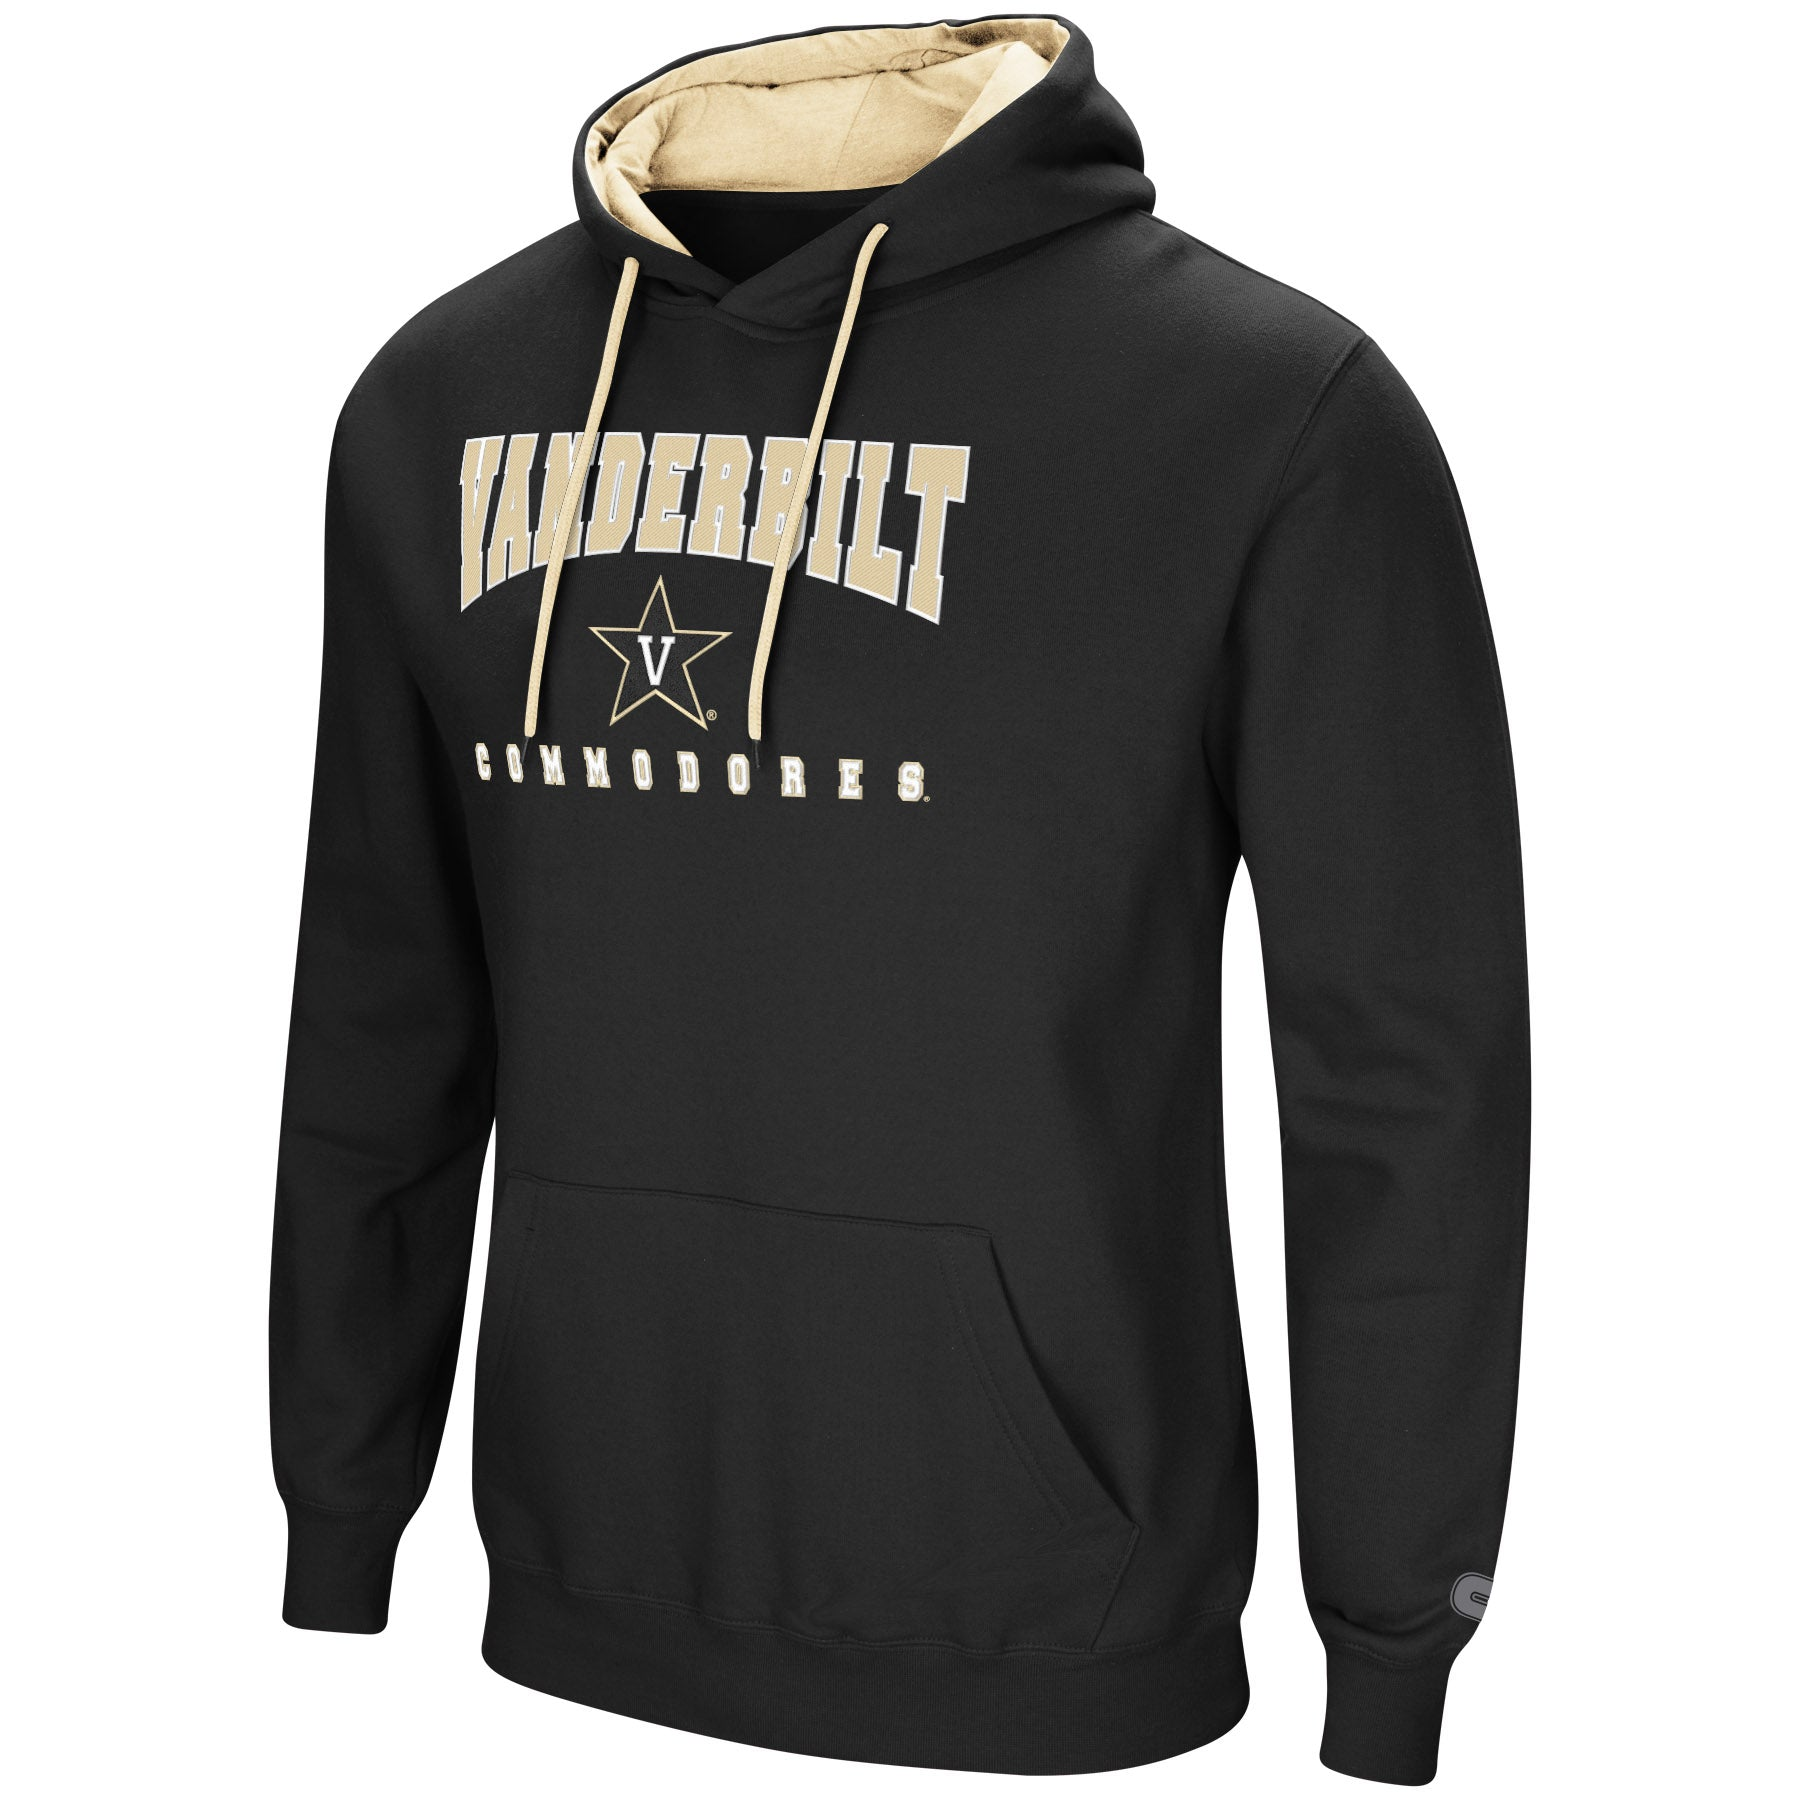 "Vanderbilt Commodores NCAA""Playbook"" Pullover Hooded"